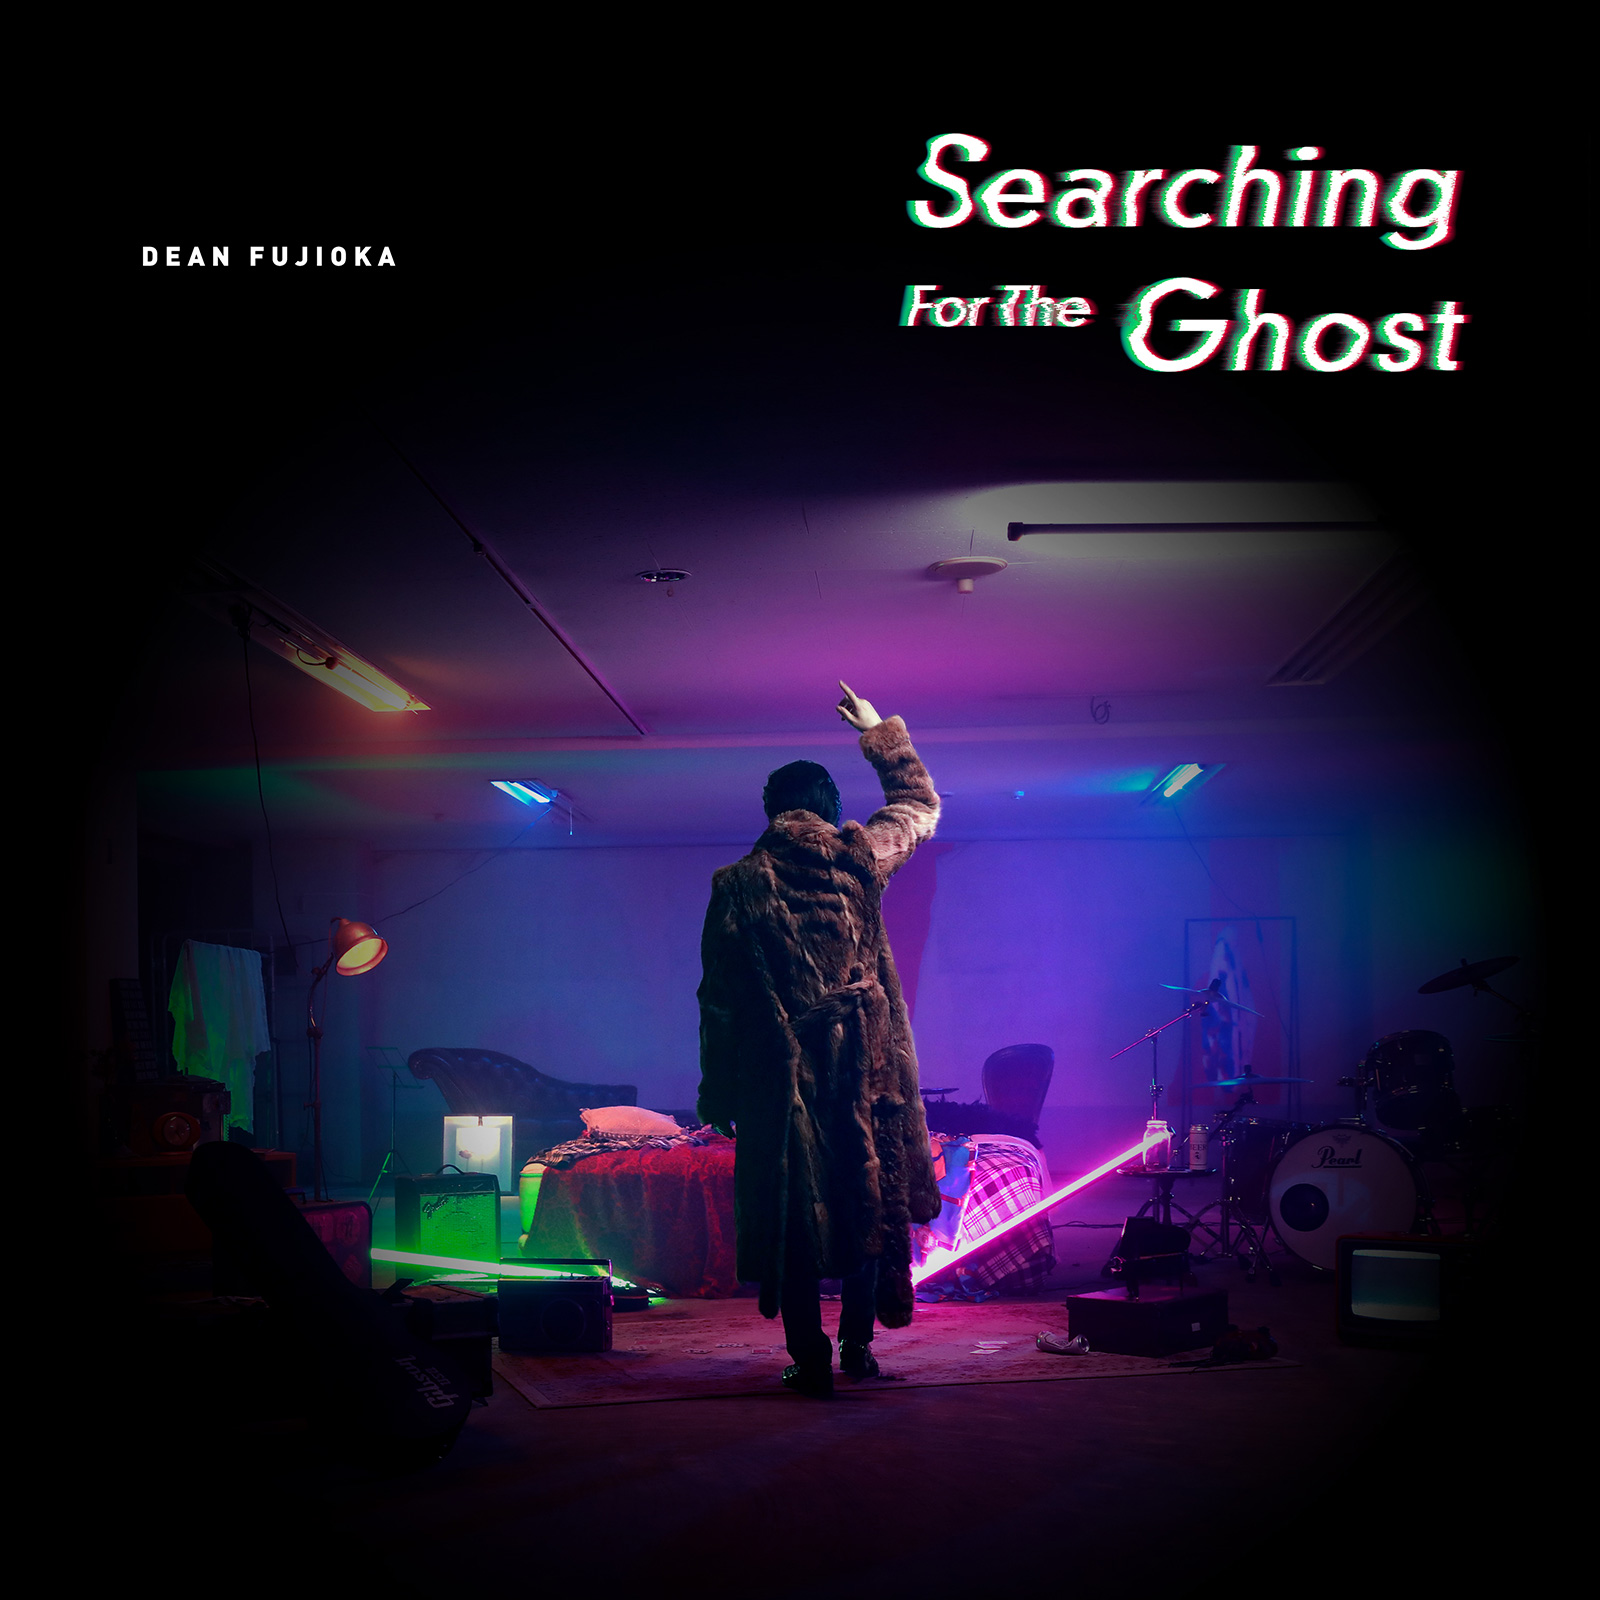 【Searching For The Ghost】